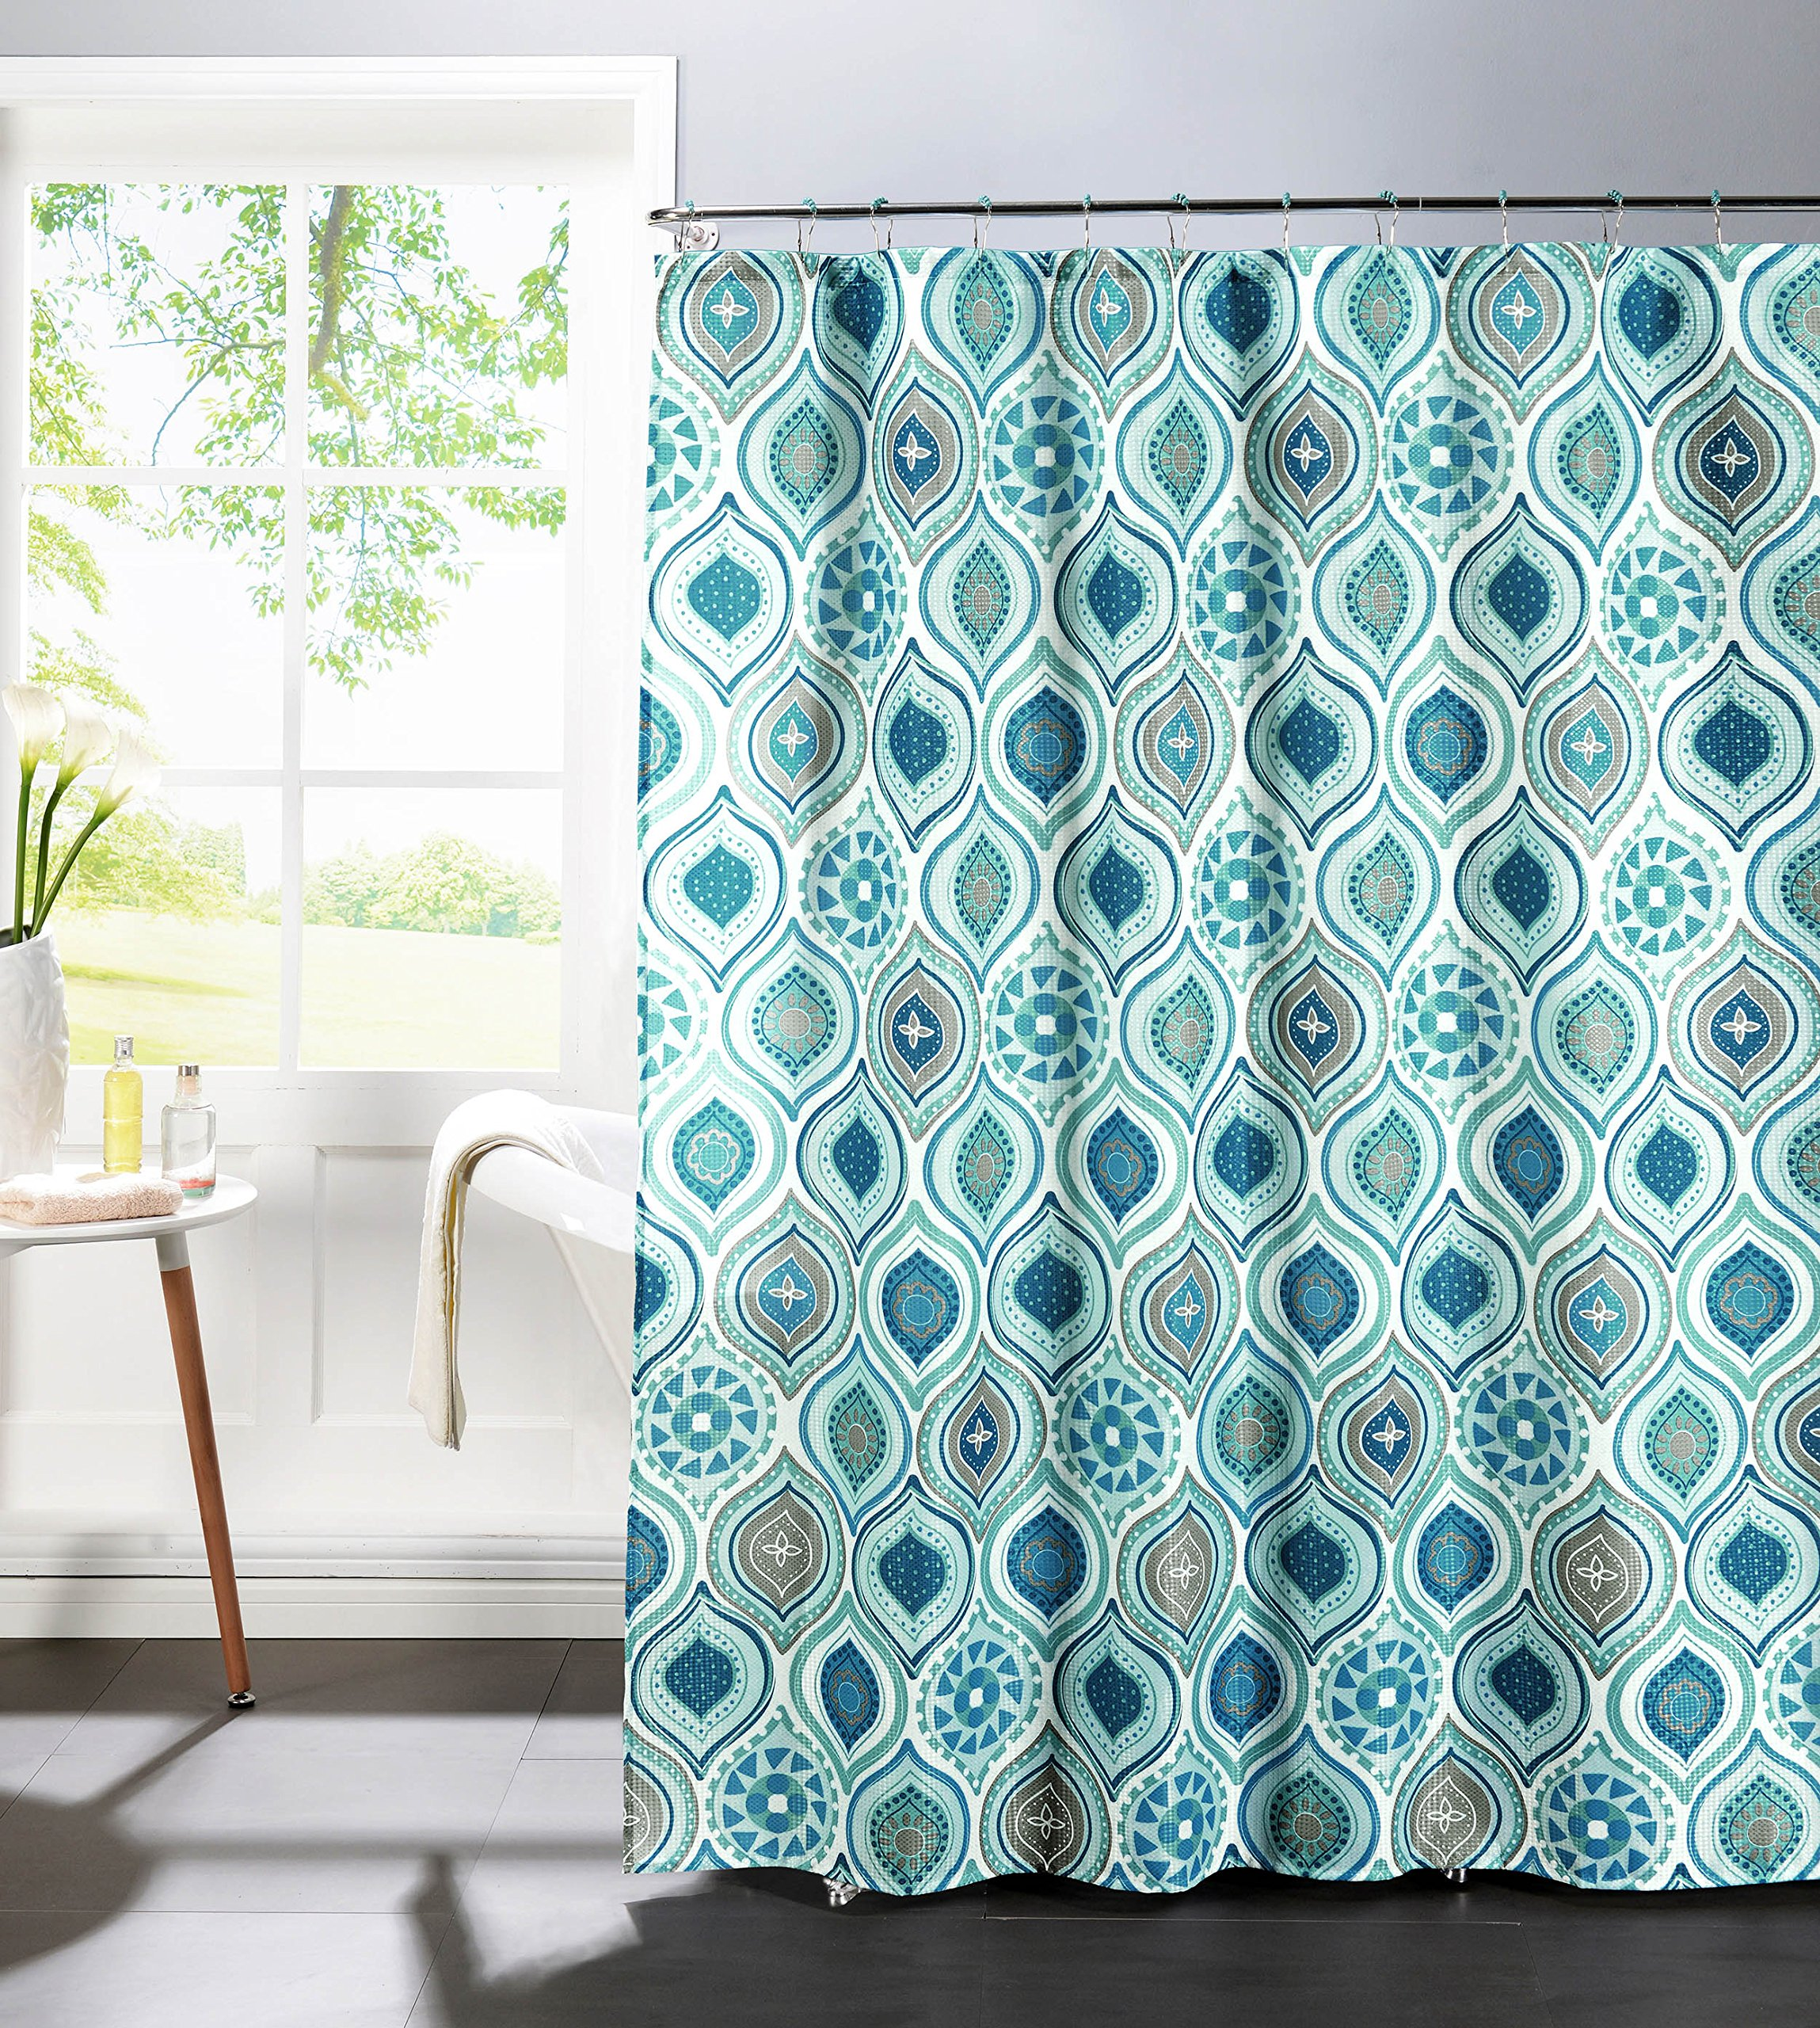 Creative Home Ideas Diamond Weave Textured 13-Piece Shower Curtain with Metal Roller Hooks, Olina in Spa